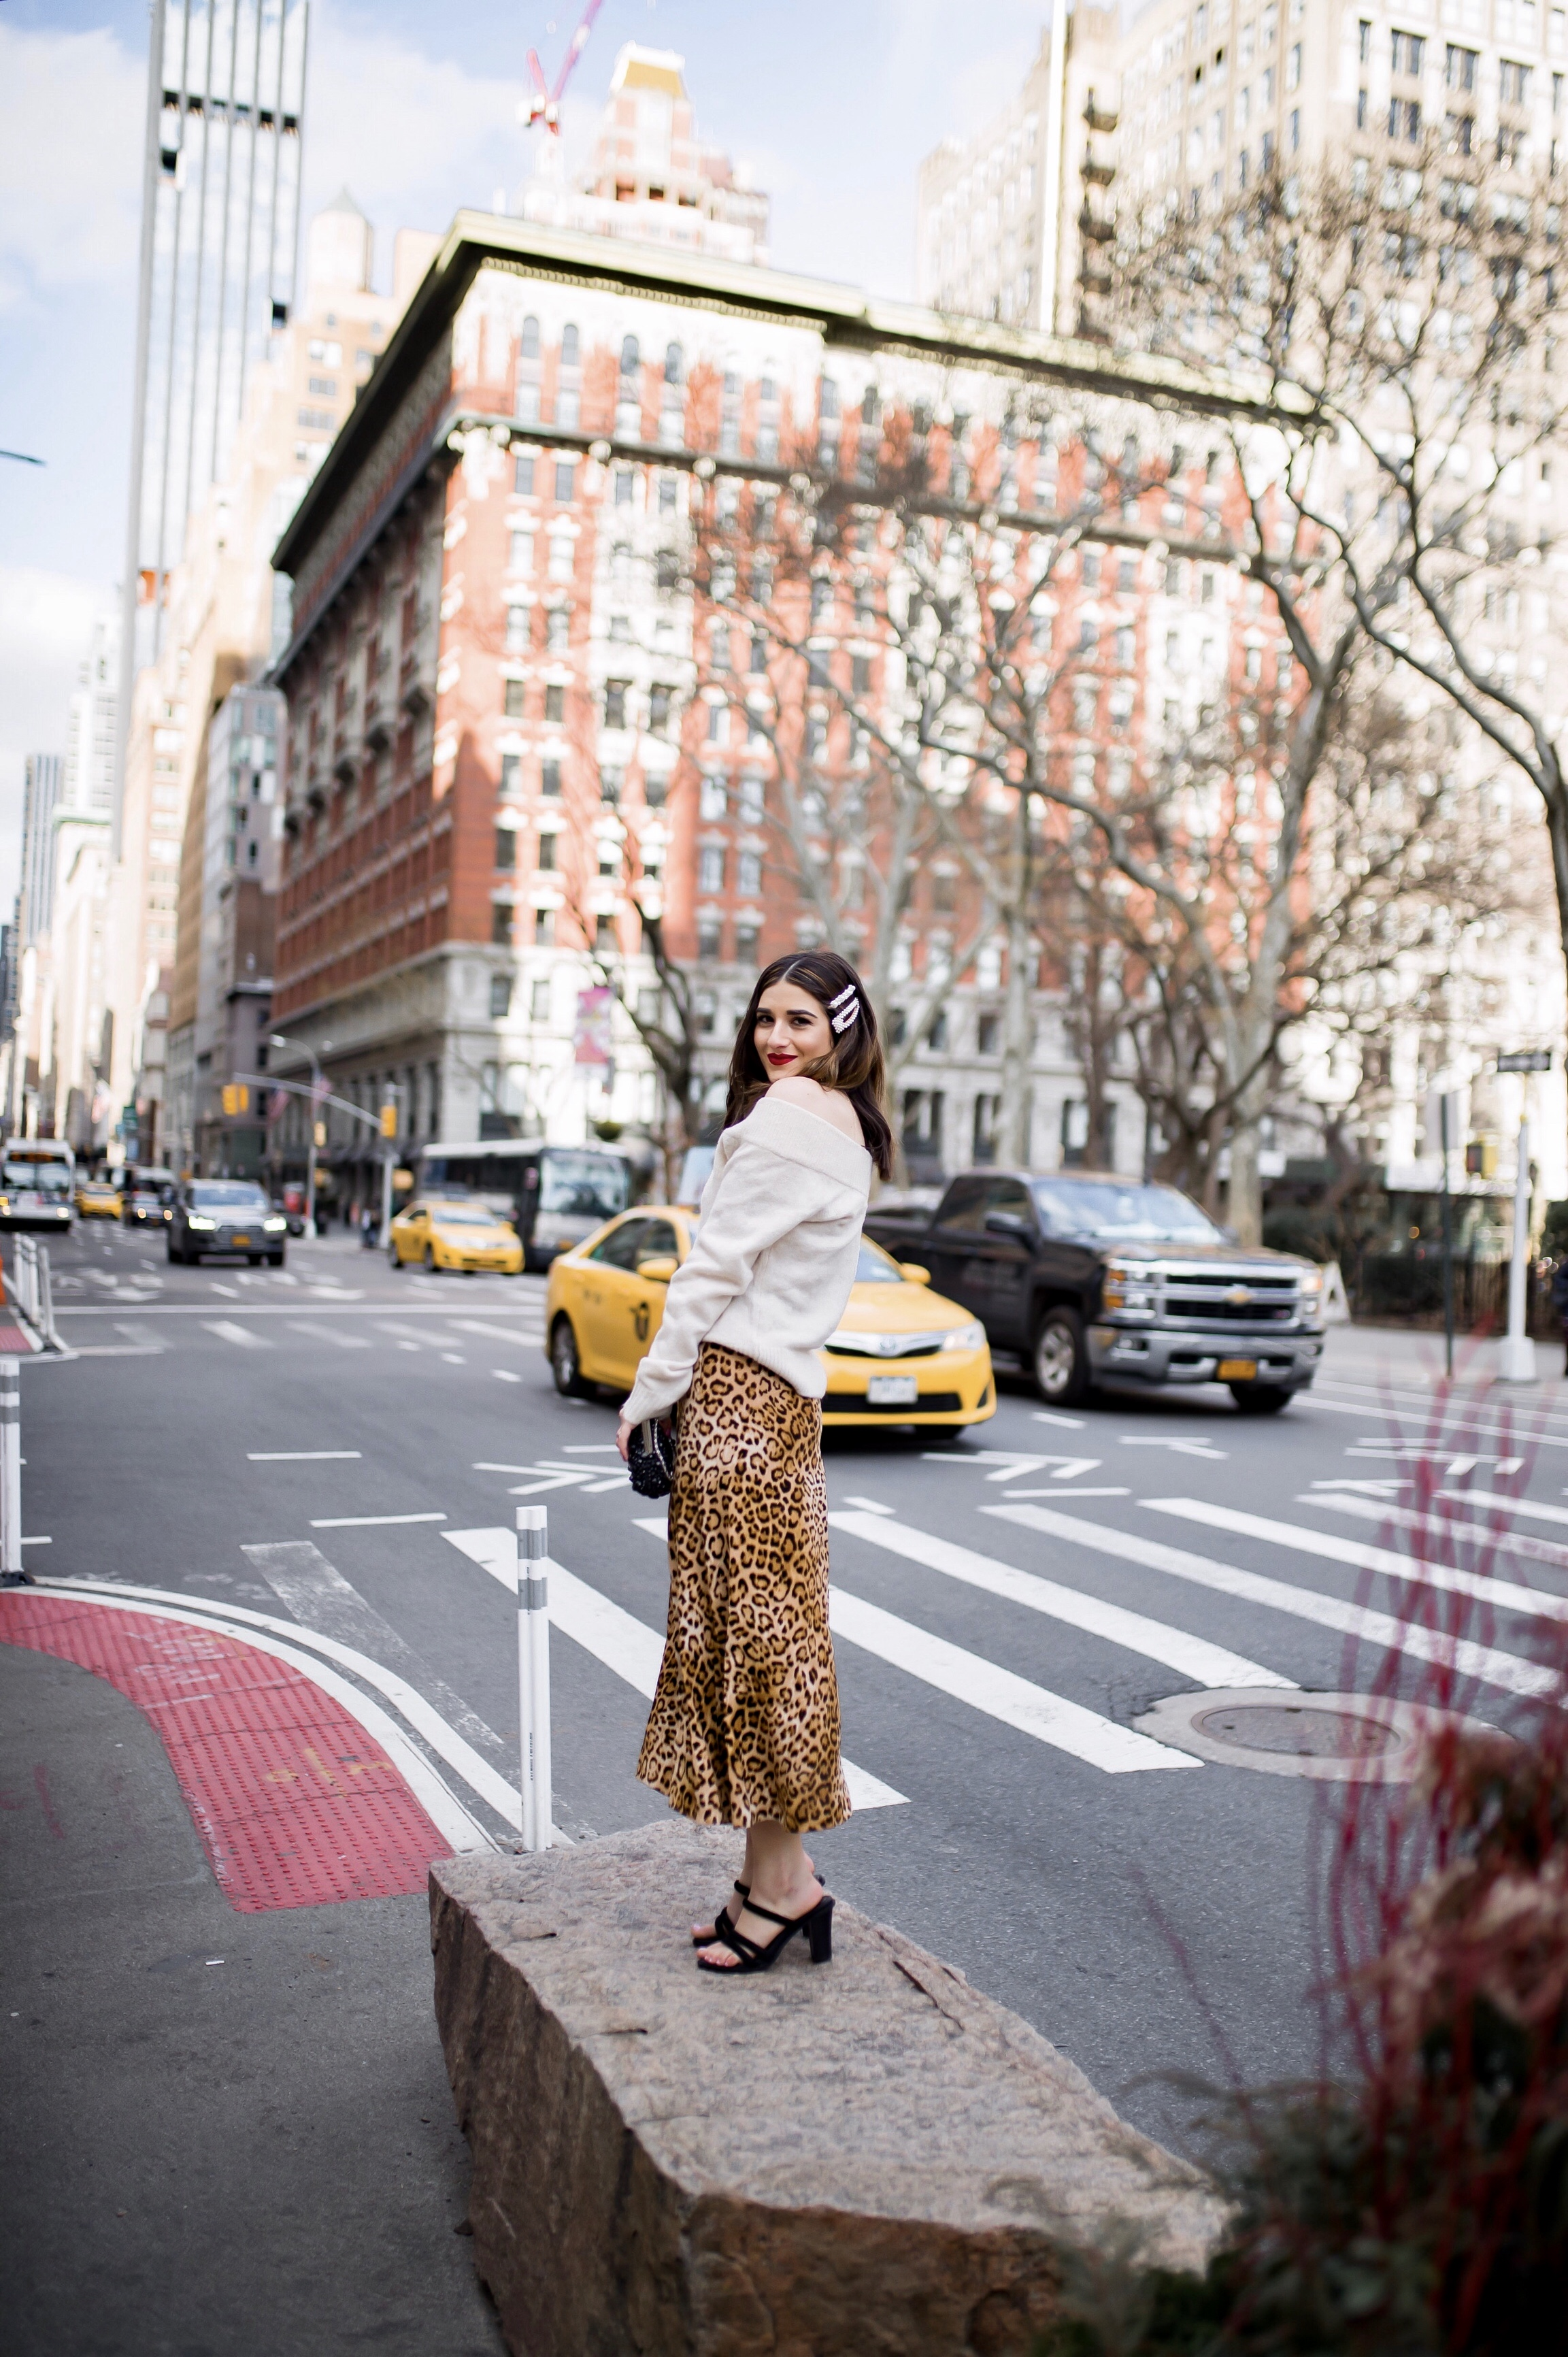 The Instagram Likes Debate Leopard Midi Skirt Beige Sweater Esther Santer Fashion Blog NYC Street Style Blogger Outfit OOTD Trendy Shopping Girl What Wear H&M Zara Pearl Barrettes Hair Clips Accessories Sandals Spring Mules Necklaces Beaded Clutch Bag.jpg